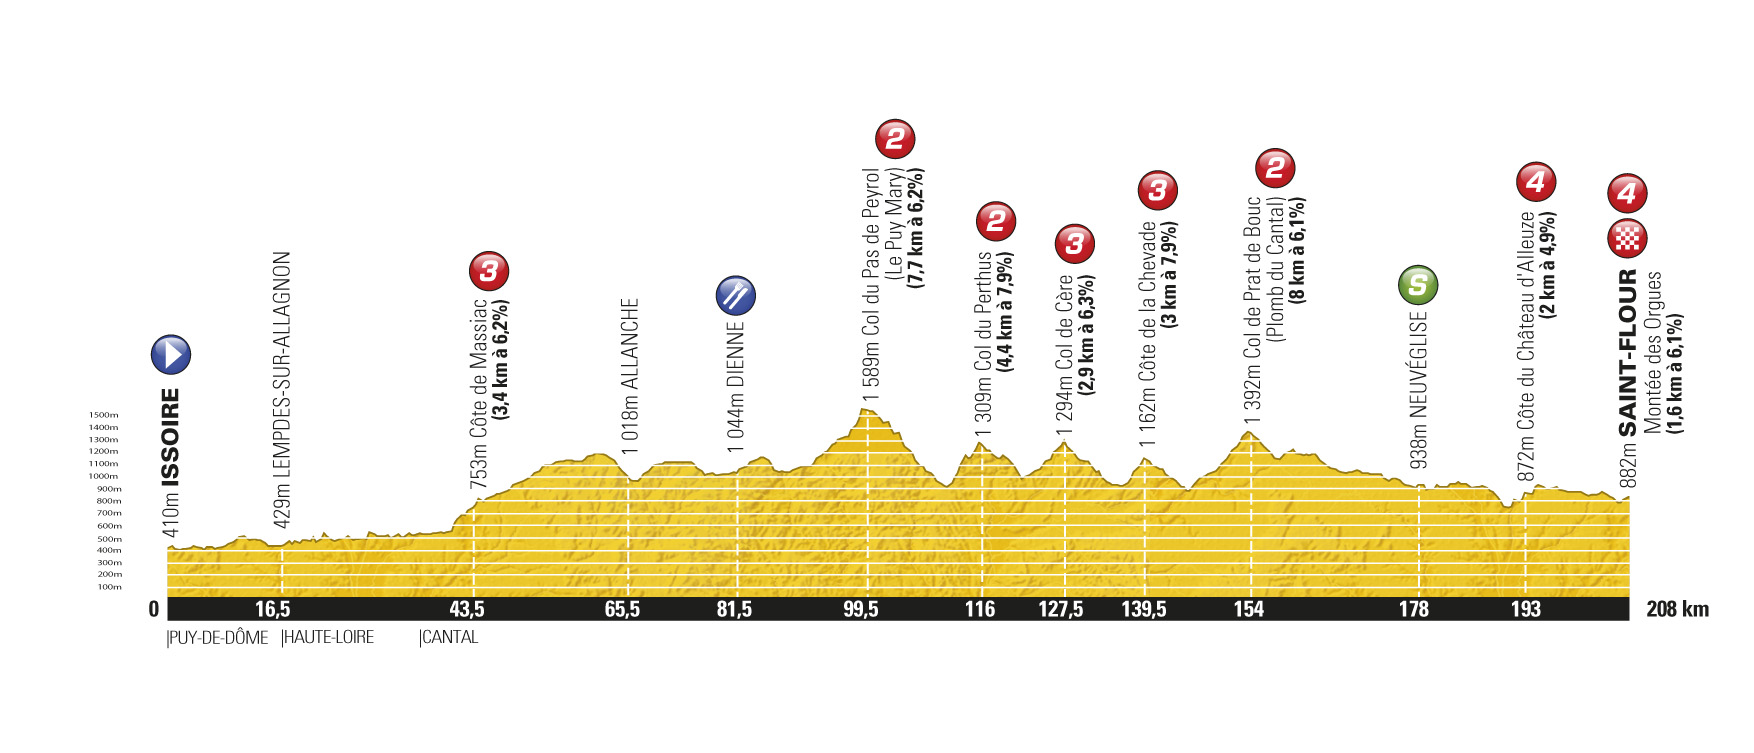 Stage 9 profile, Tour de France 2011